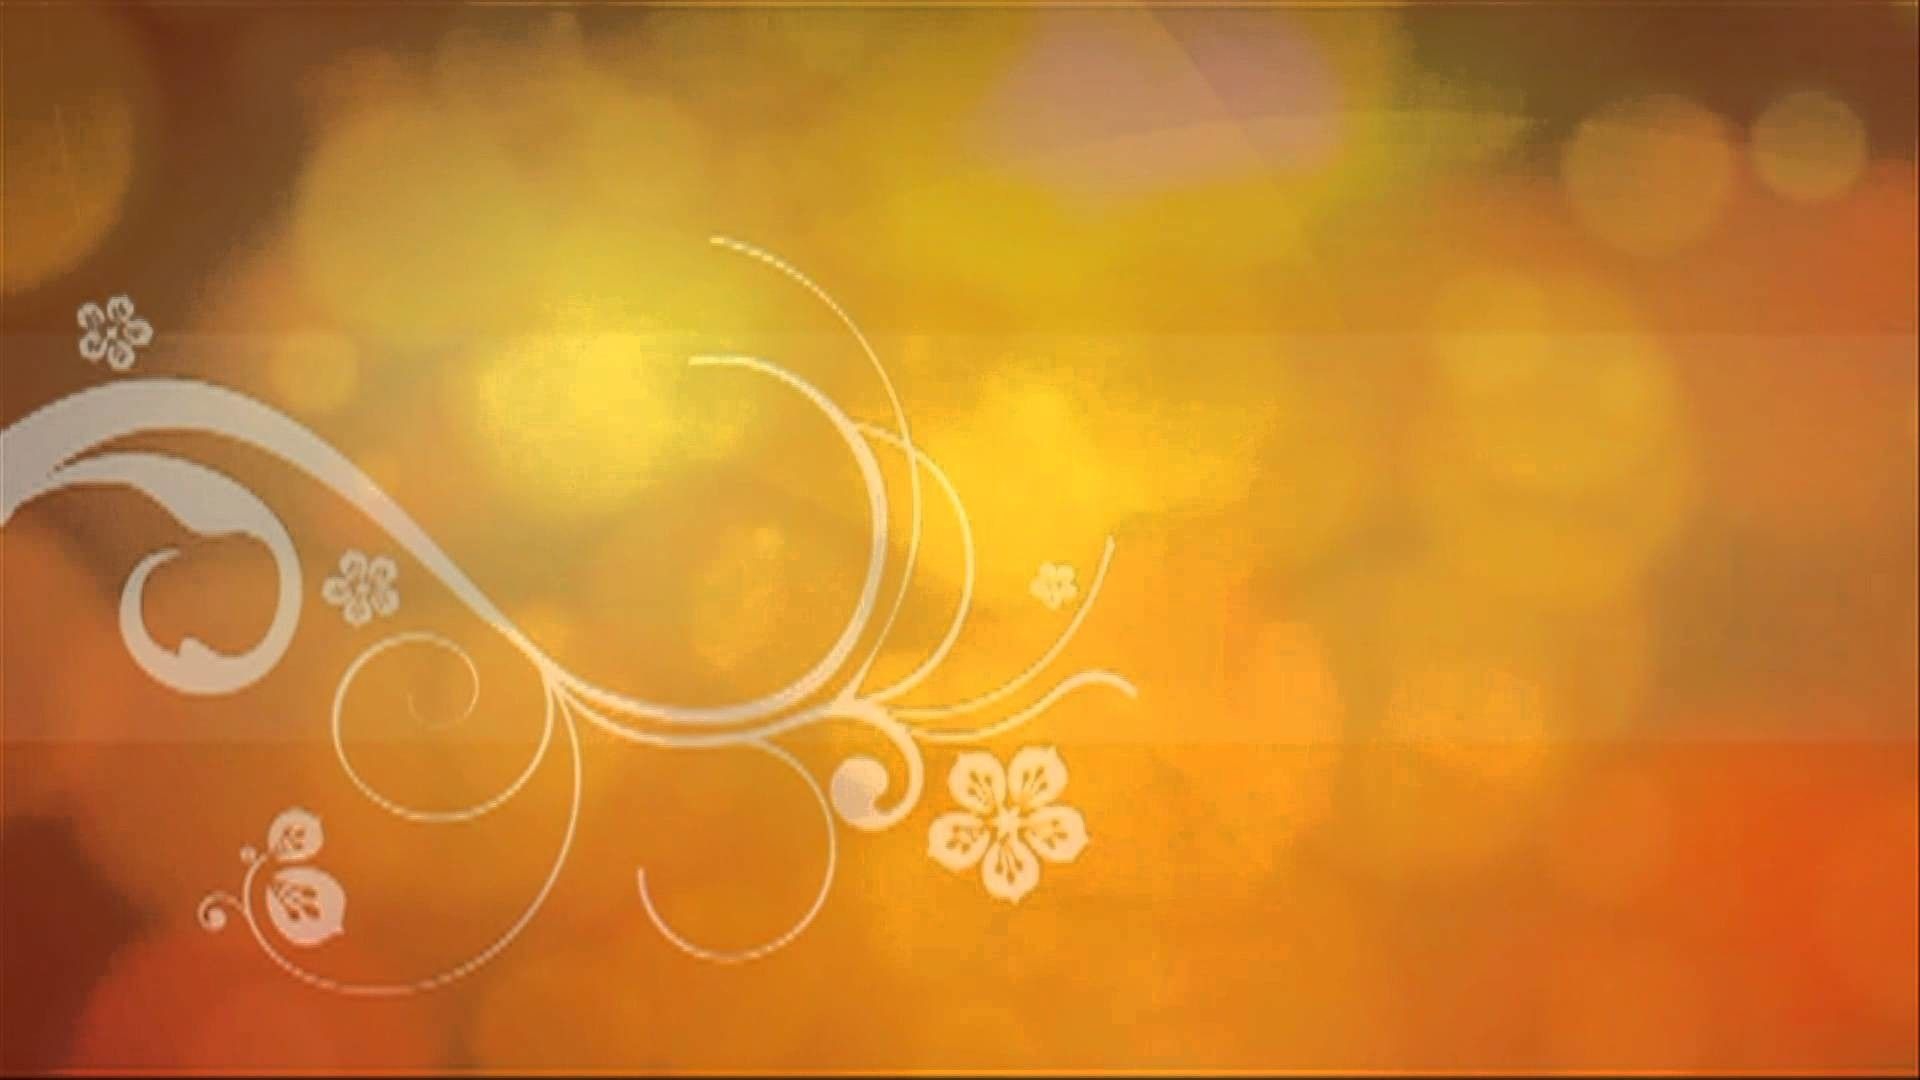 Wedding Background Hd Free Download 1920x1080 Wallpaper Teahub Io